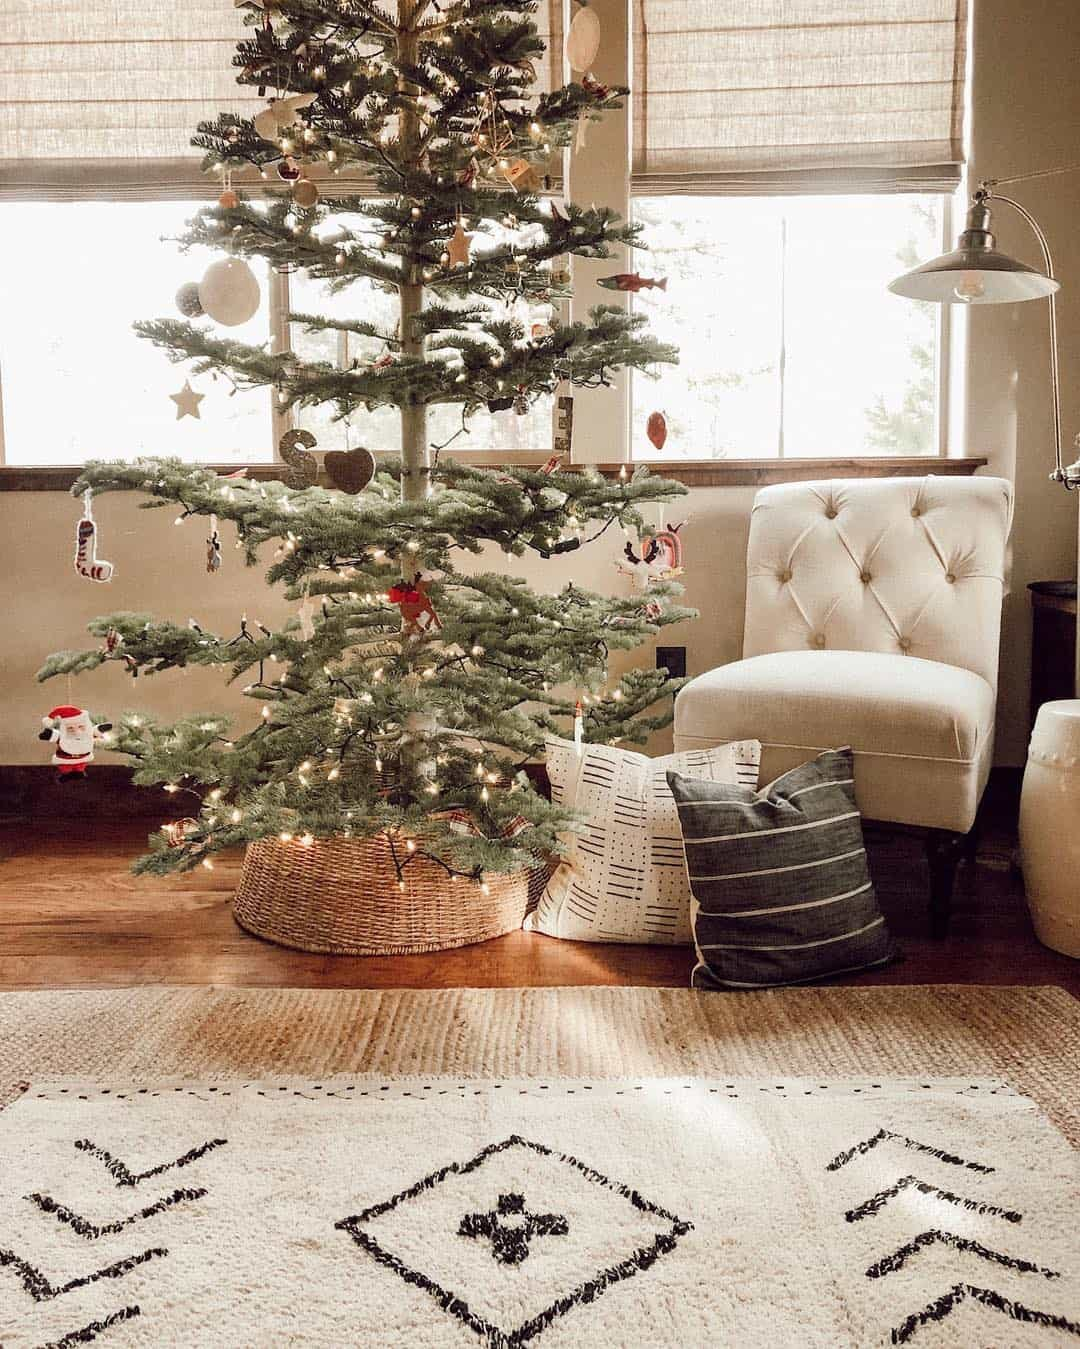 Living room with Christmas tree next to window.